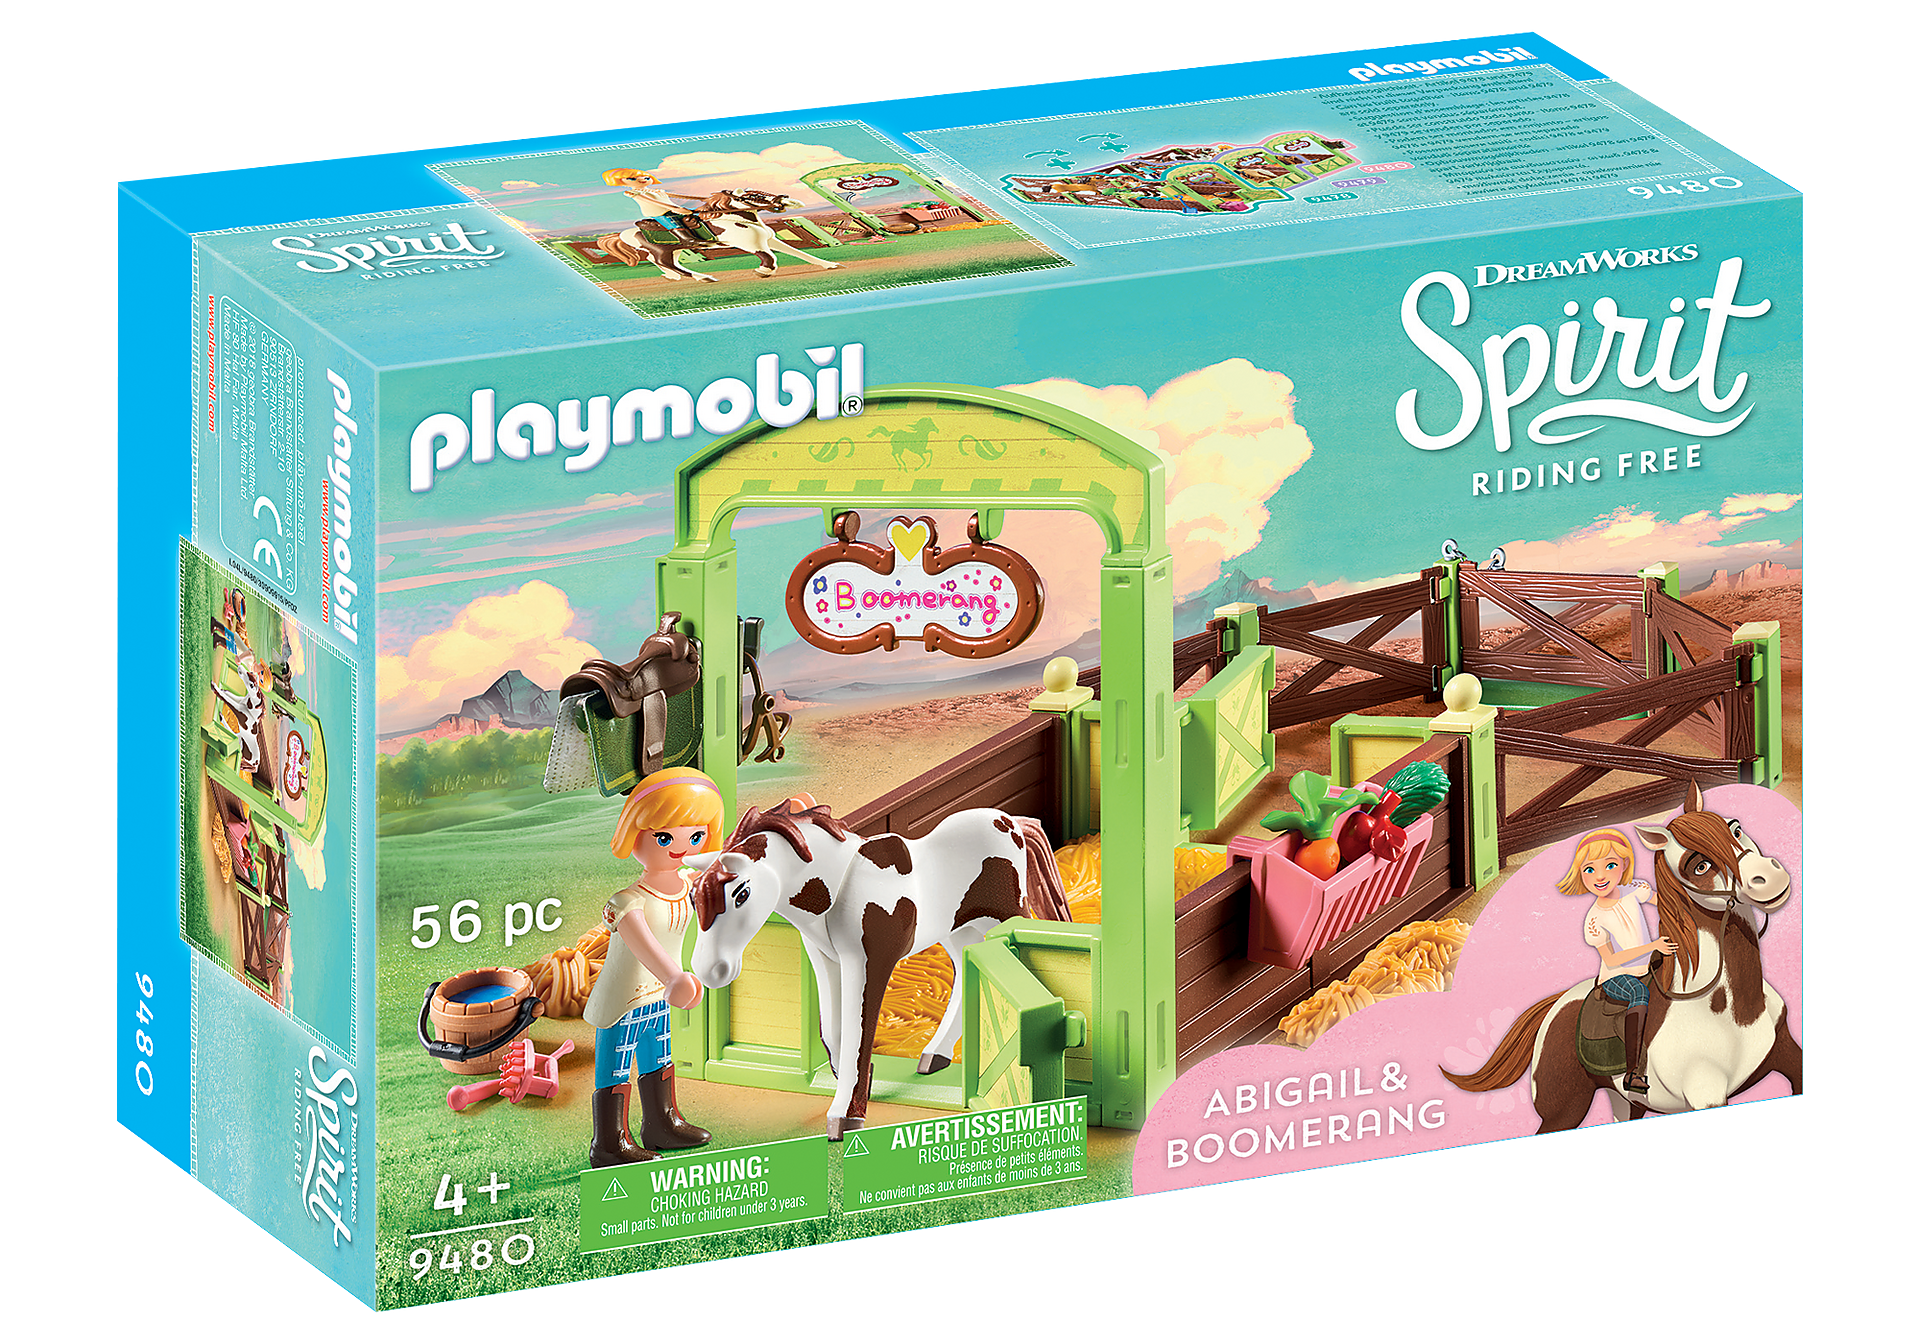 http://media.playmobil.com/i/playmobil/9480_product_box_front/Abigail & Boomerang with Horse Stall